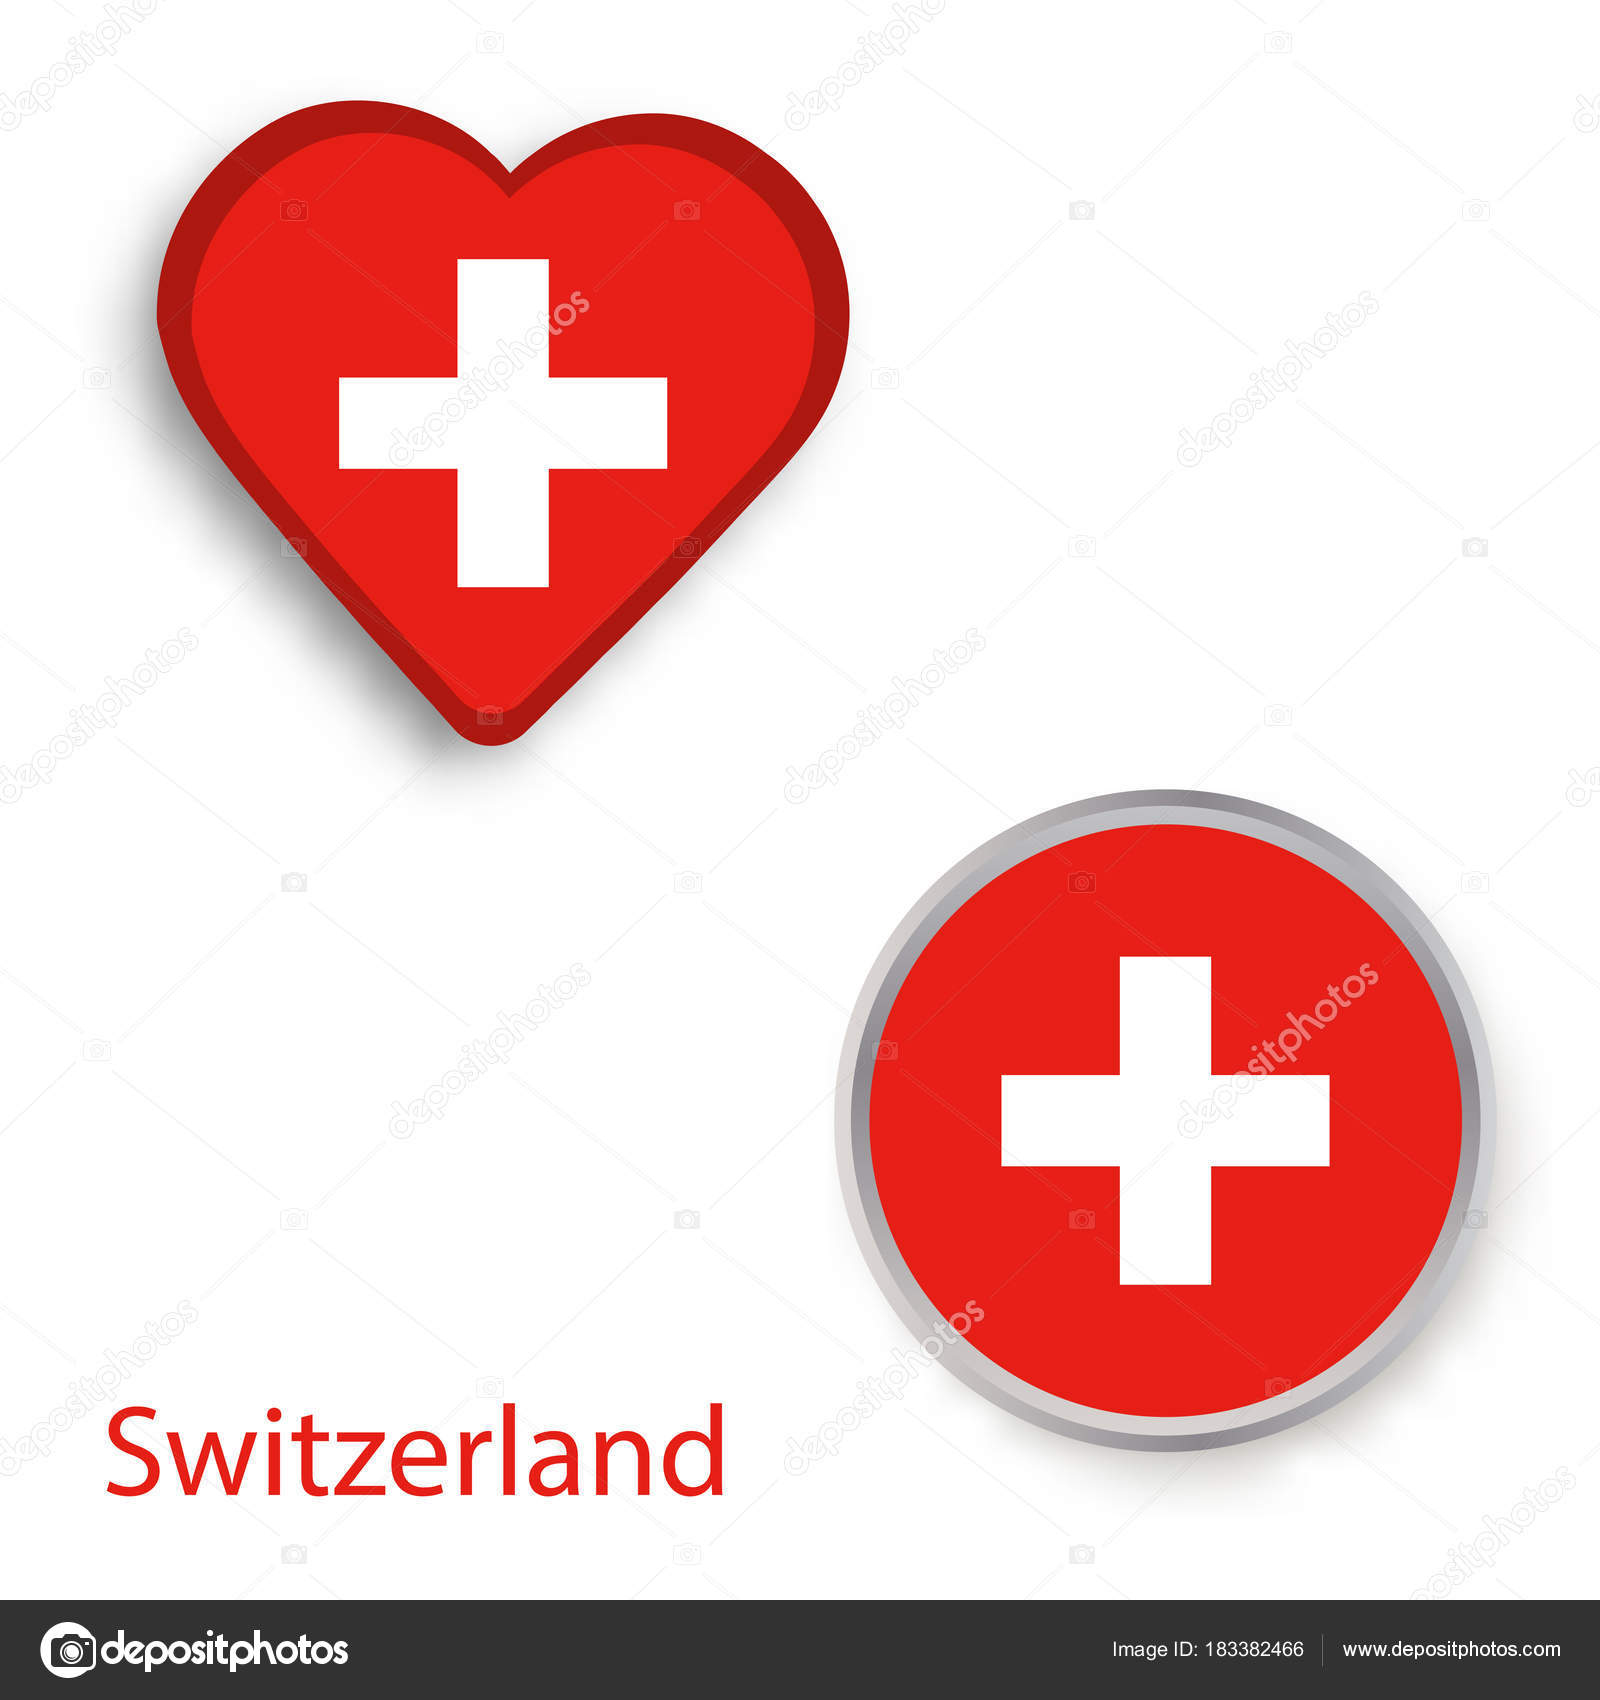 Heart And Circle Symbols With Flag Of Switzerland Stock Vector